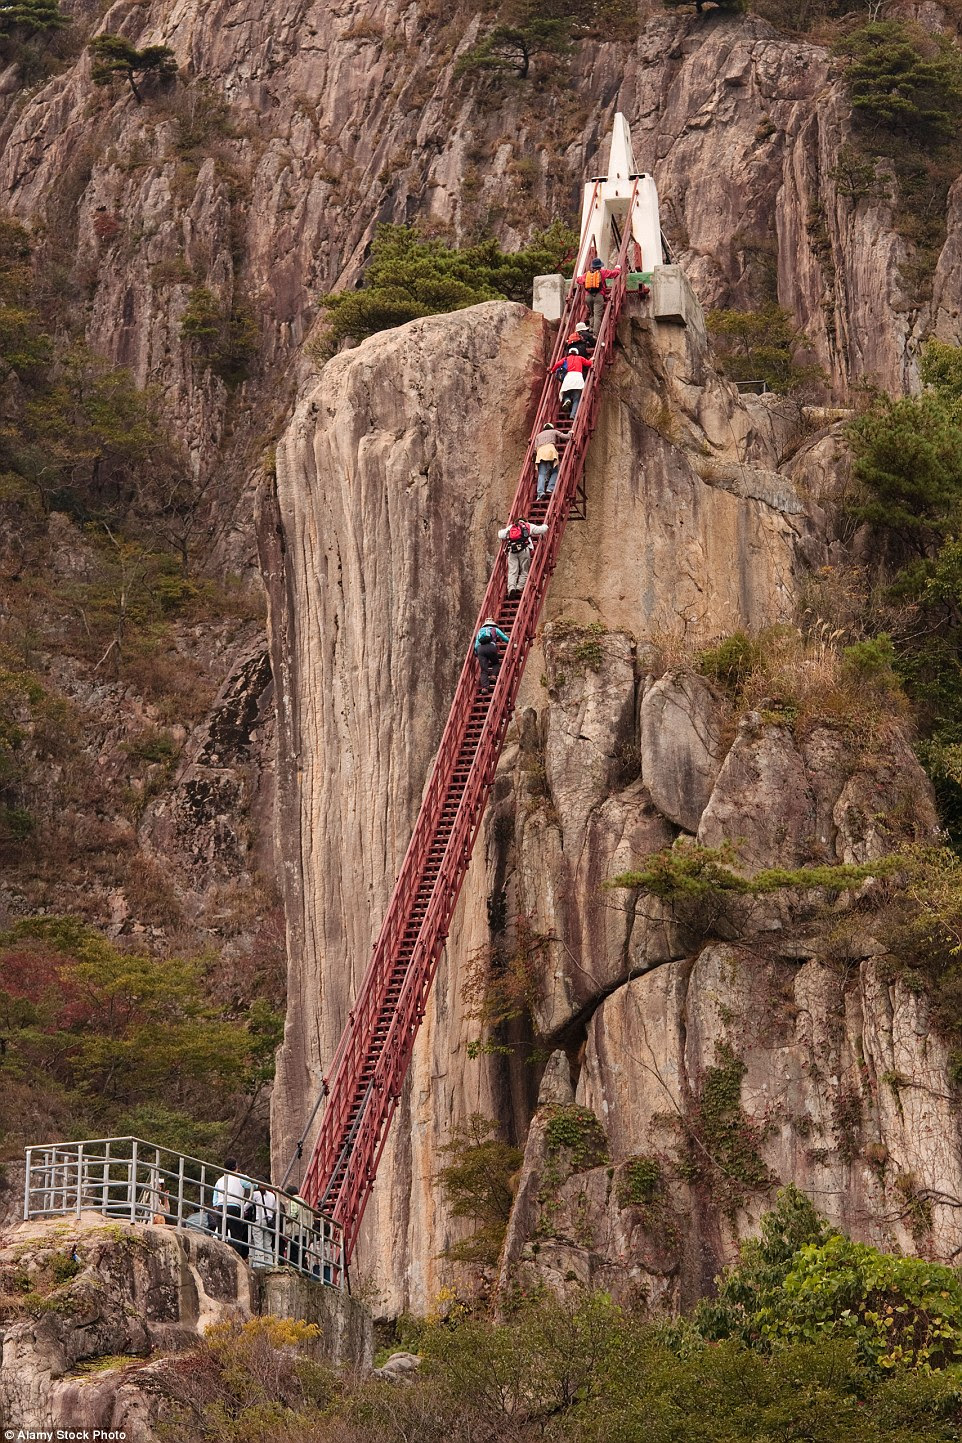 Suspended                                                      above the massive                                                      and foreboding                                                      ravines in                                                      Daedunsan                                                      Provincial Park in                                                      South Korea, the                                                      visitor bridges                                                      and ladder-like                                                      walkways make for                                                      an                                                      adreneline-filled                                                      experience